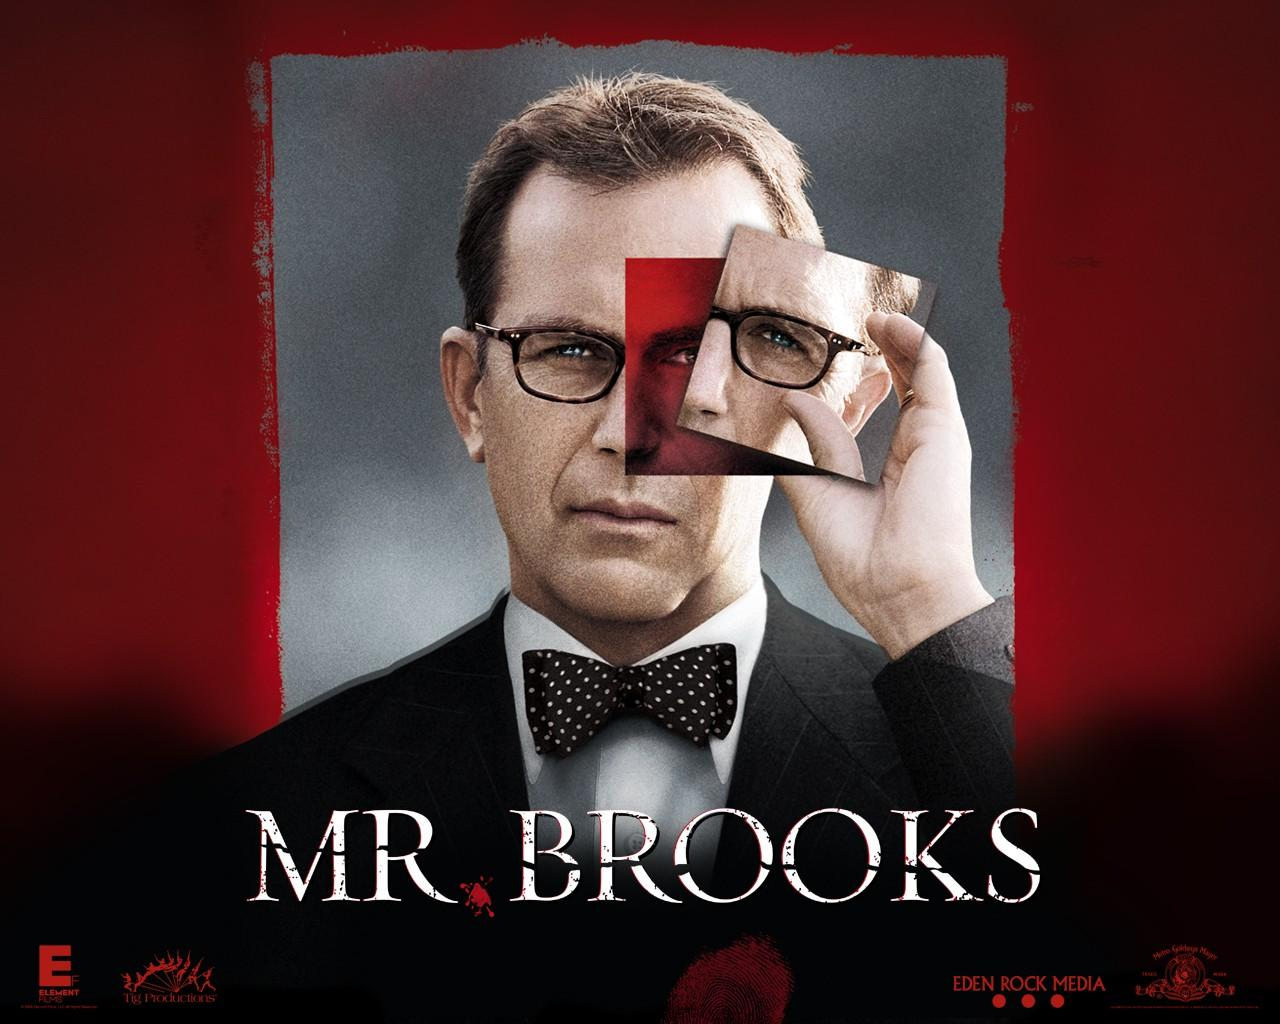 Обои Mr. Brooks 1280x1024